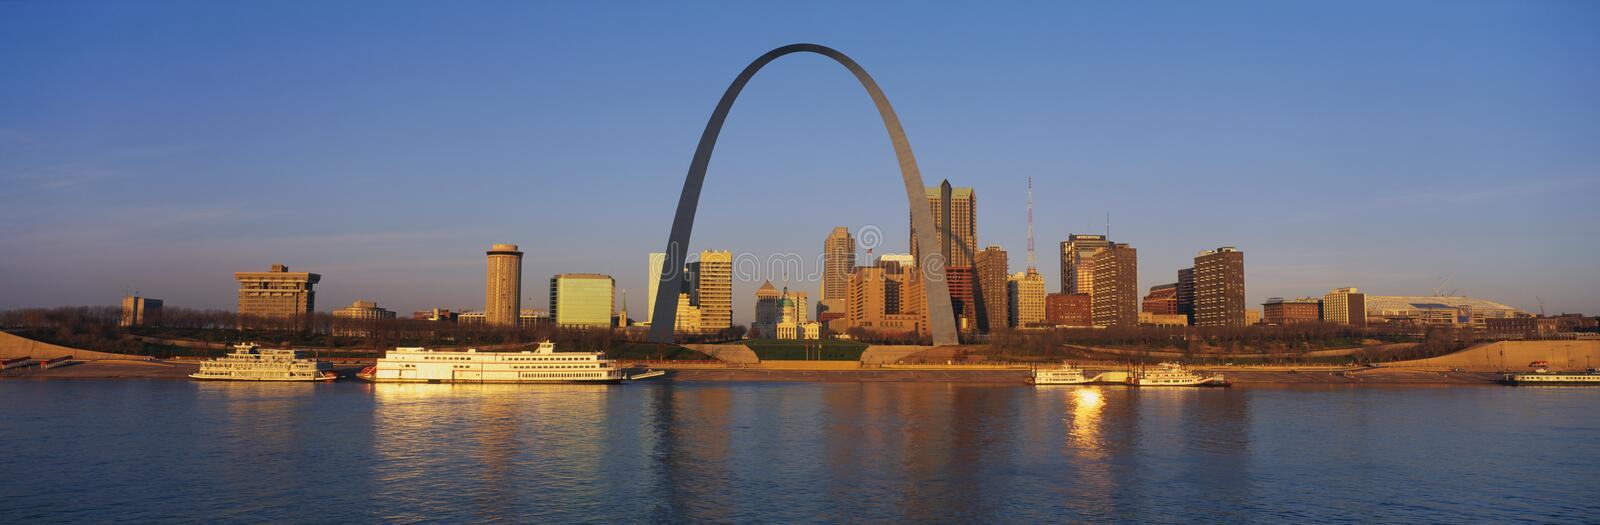 St. Louis Arch. This is the skyline at sunrise. It is situated along the Mississippi River. There are riverboats on the water with the St. Louis Arch in clear royalty free stock image